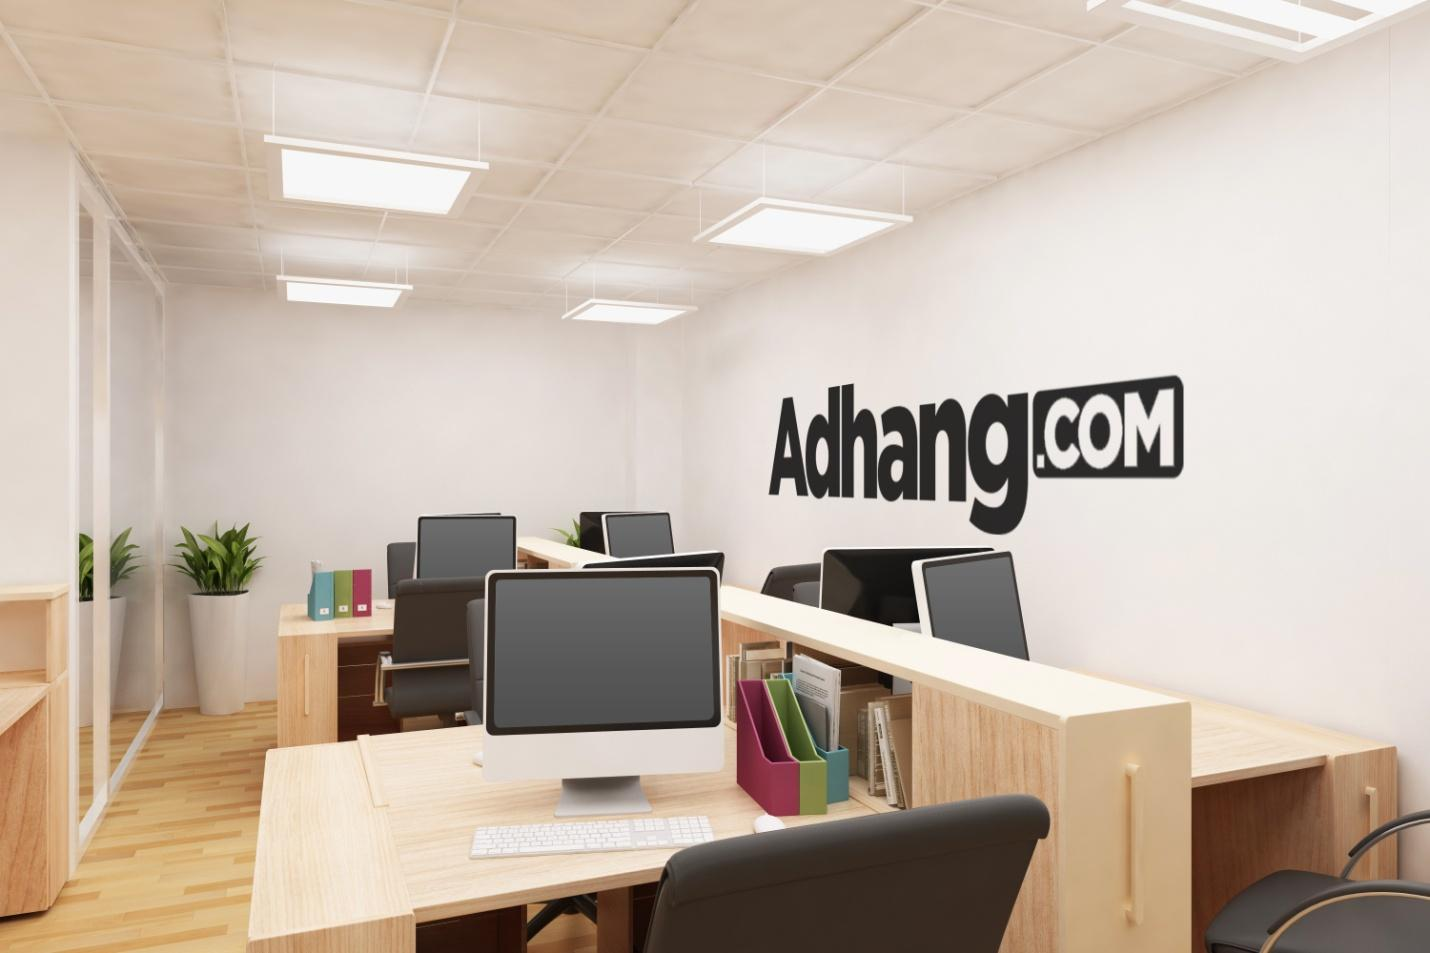 C:\Users\pc\Documents\my website  folder\Adhang\Adhang clients\Adhang contents\Office Mockups\Online-awareness- Nigeria-AdHang.jpg